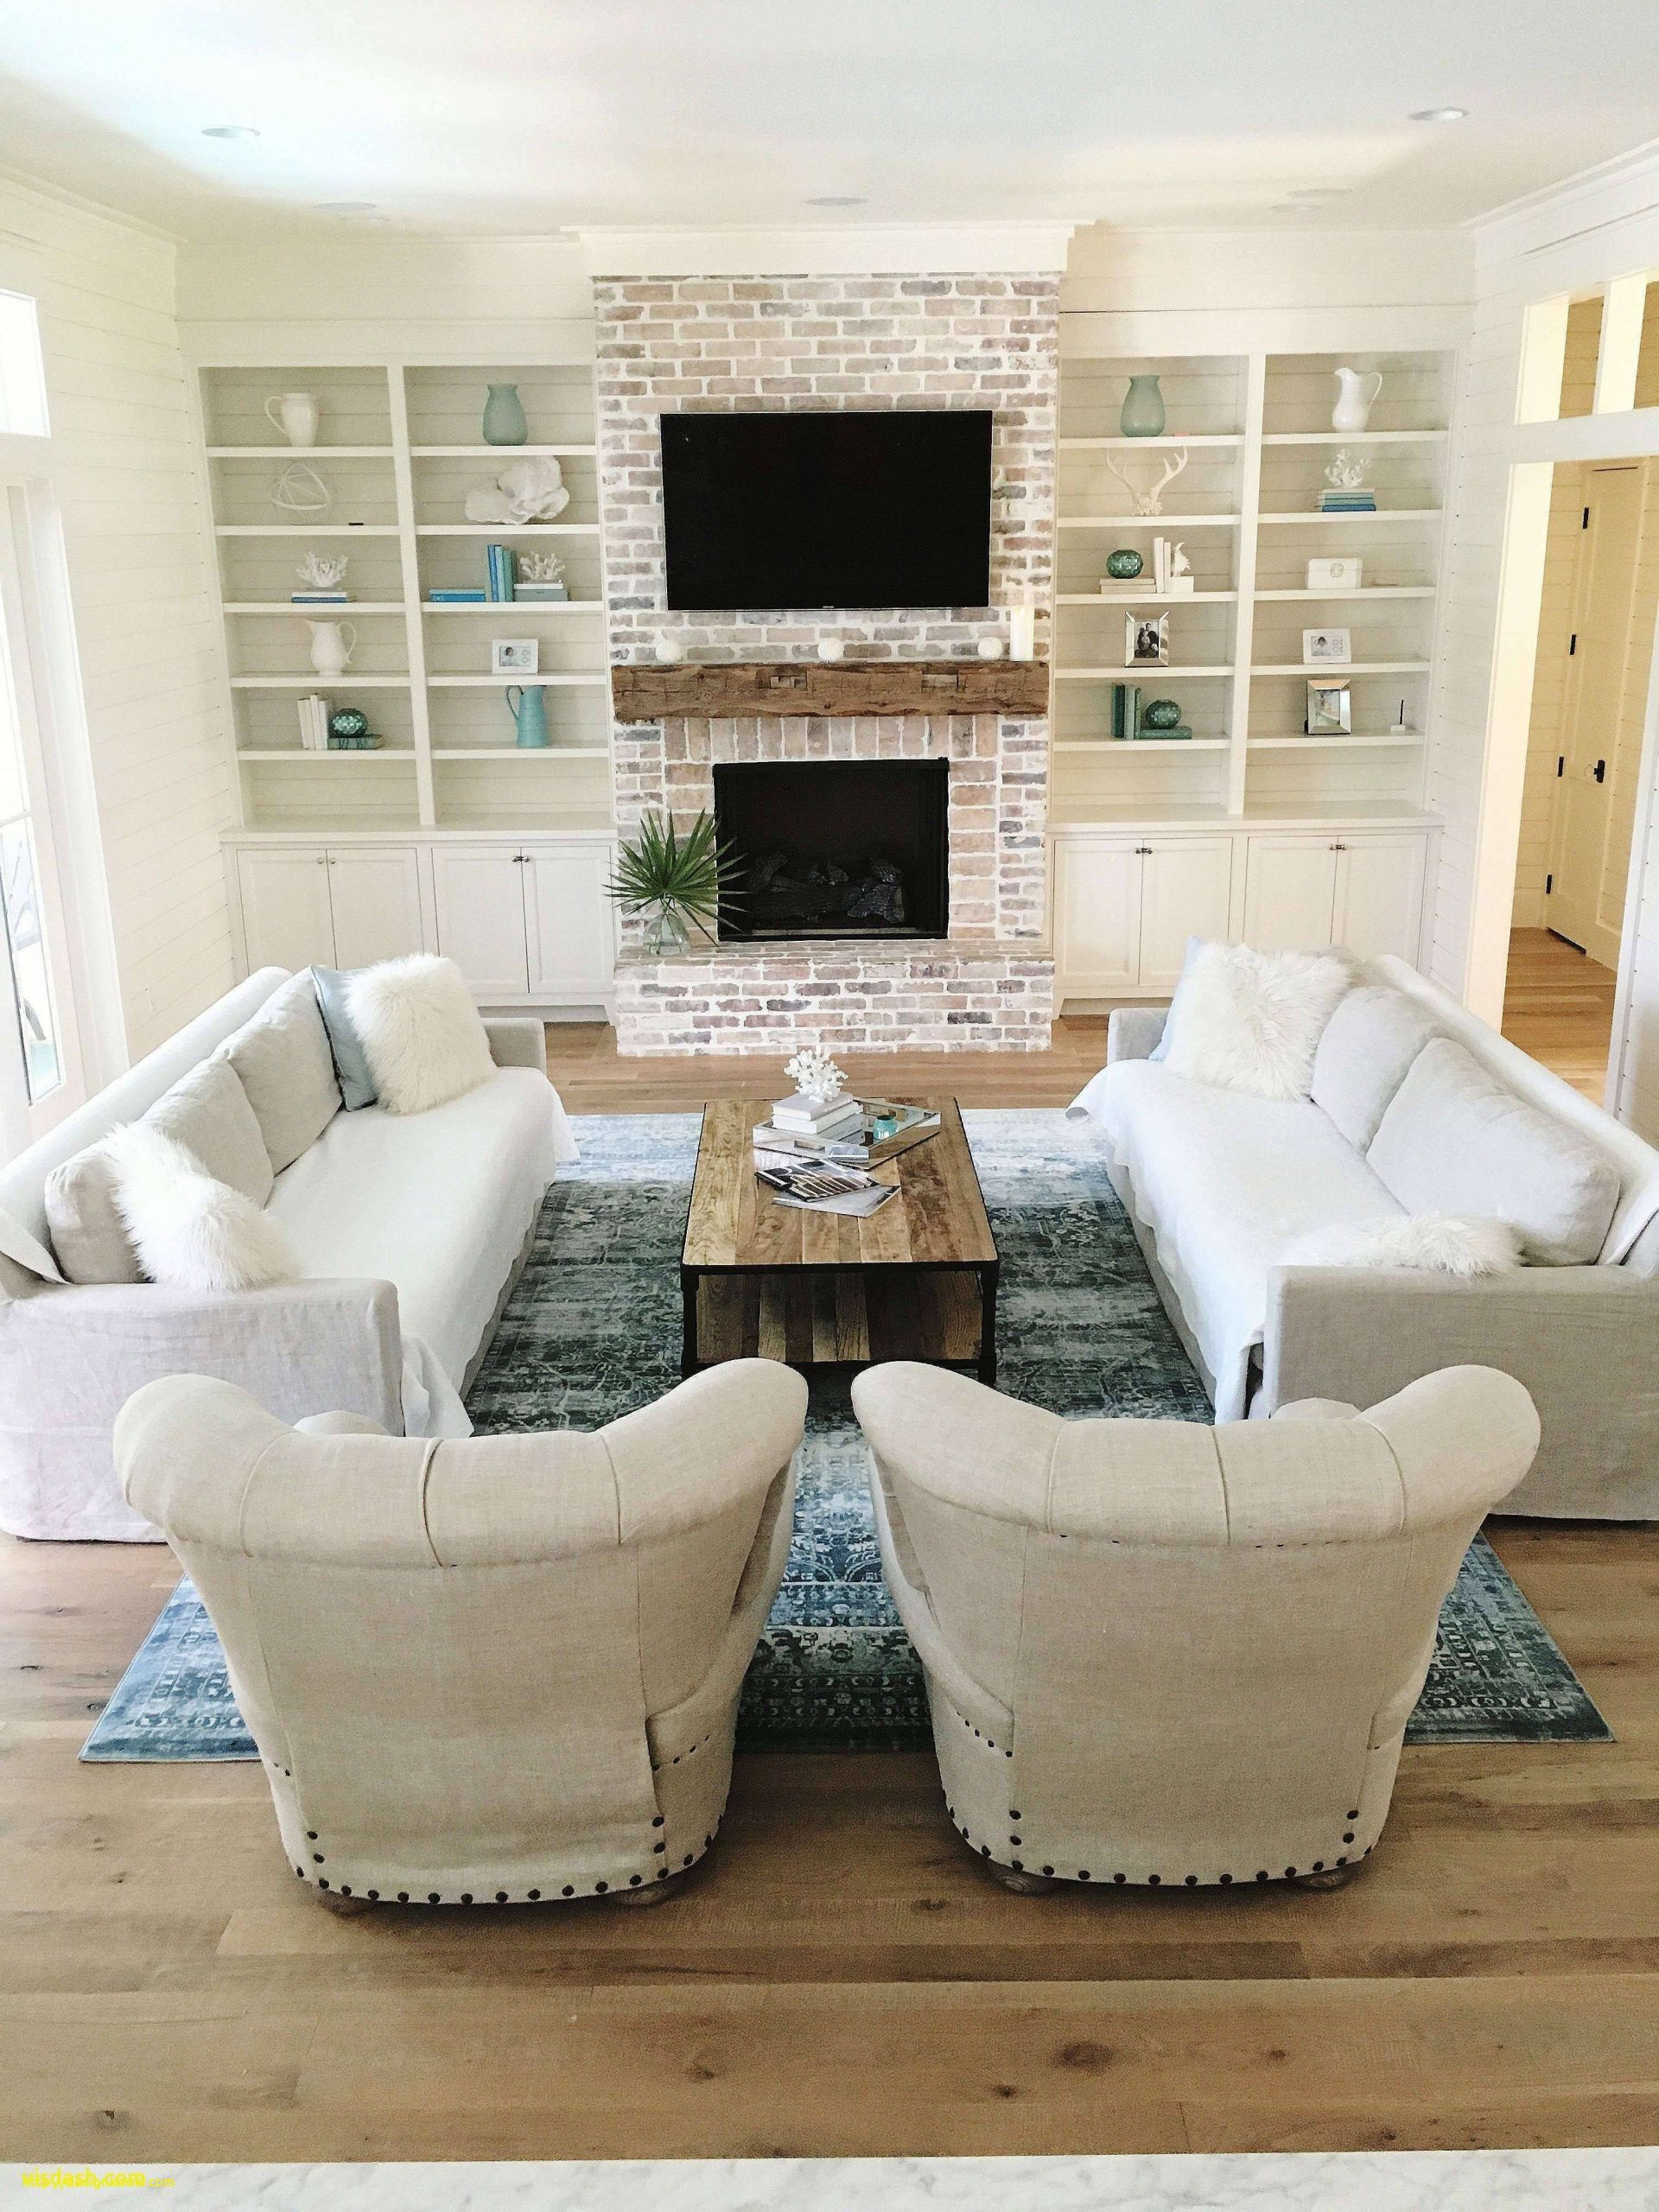 great interior design for small spaces inspirational lovely interior design for small spaces home design and interior design of great interior design for small spaces